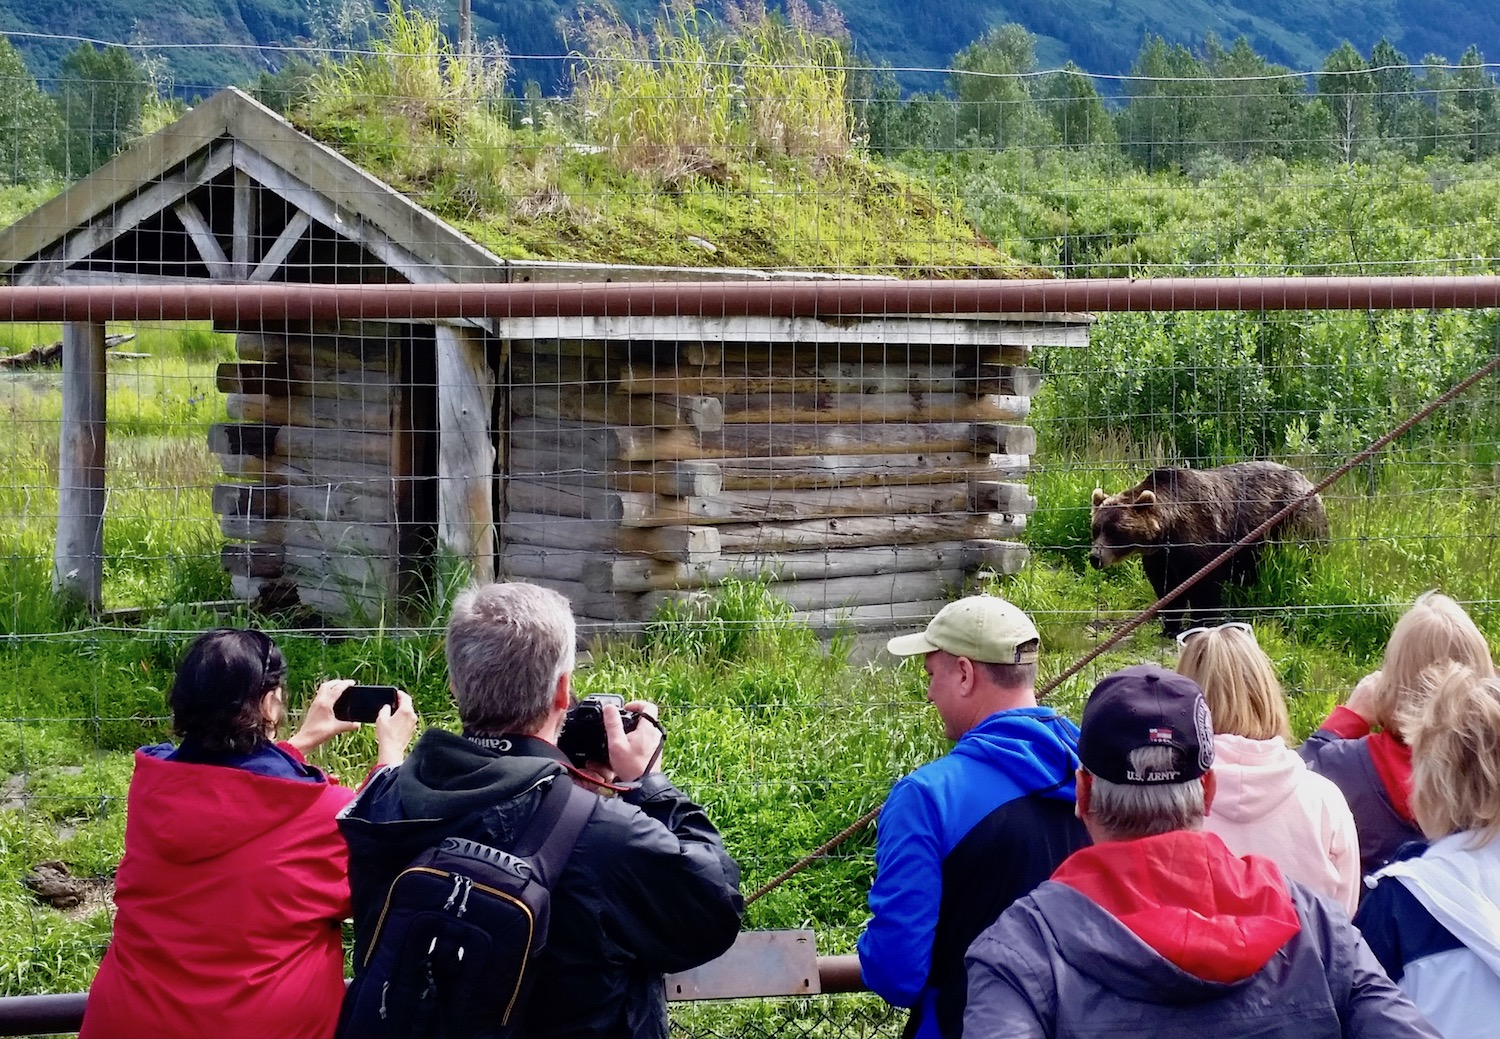 Group takes picture of bear at Alaska Wildlife Conservation Center